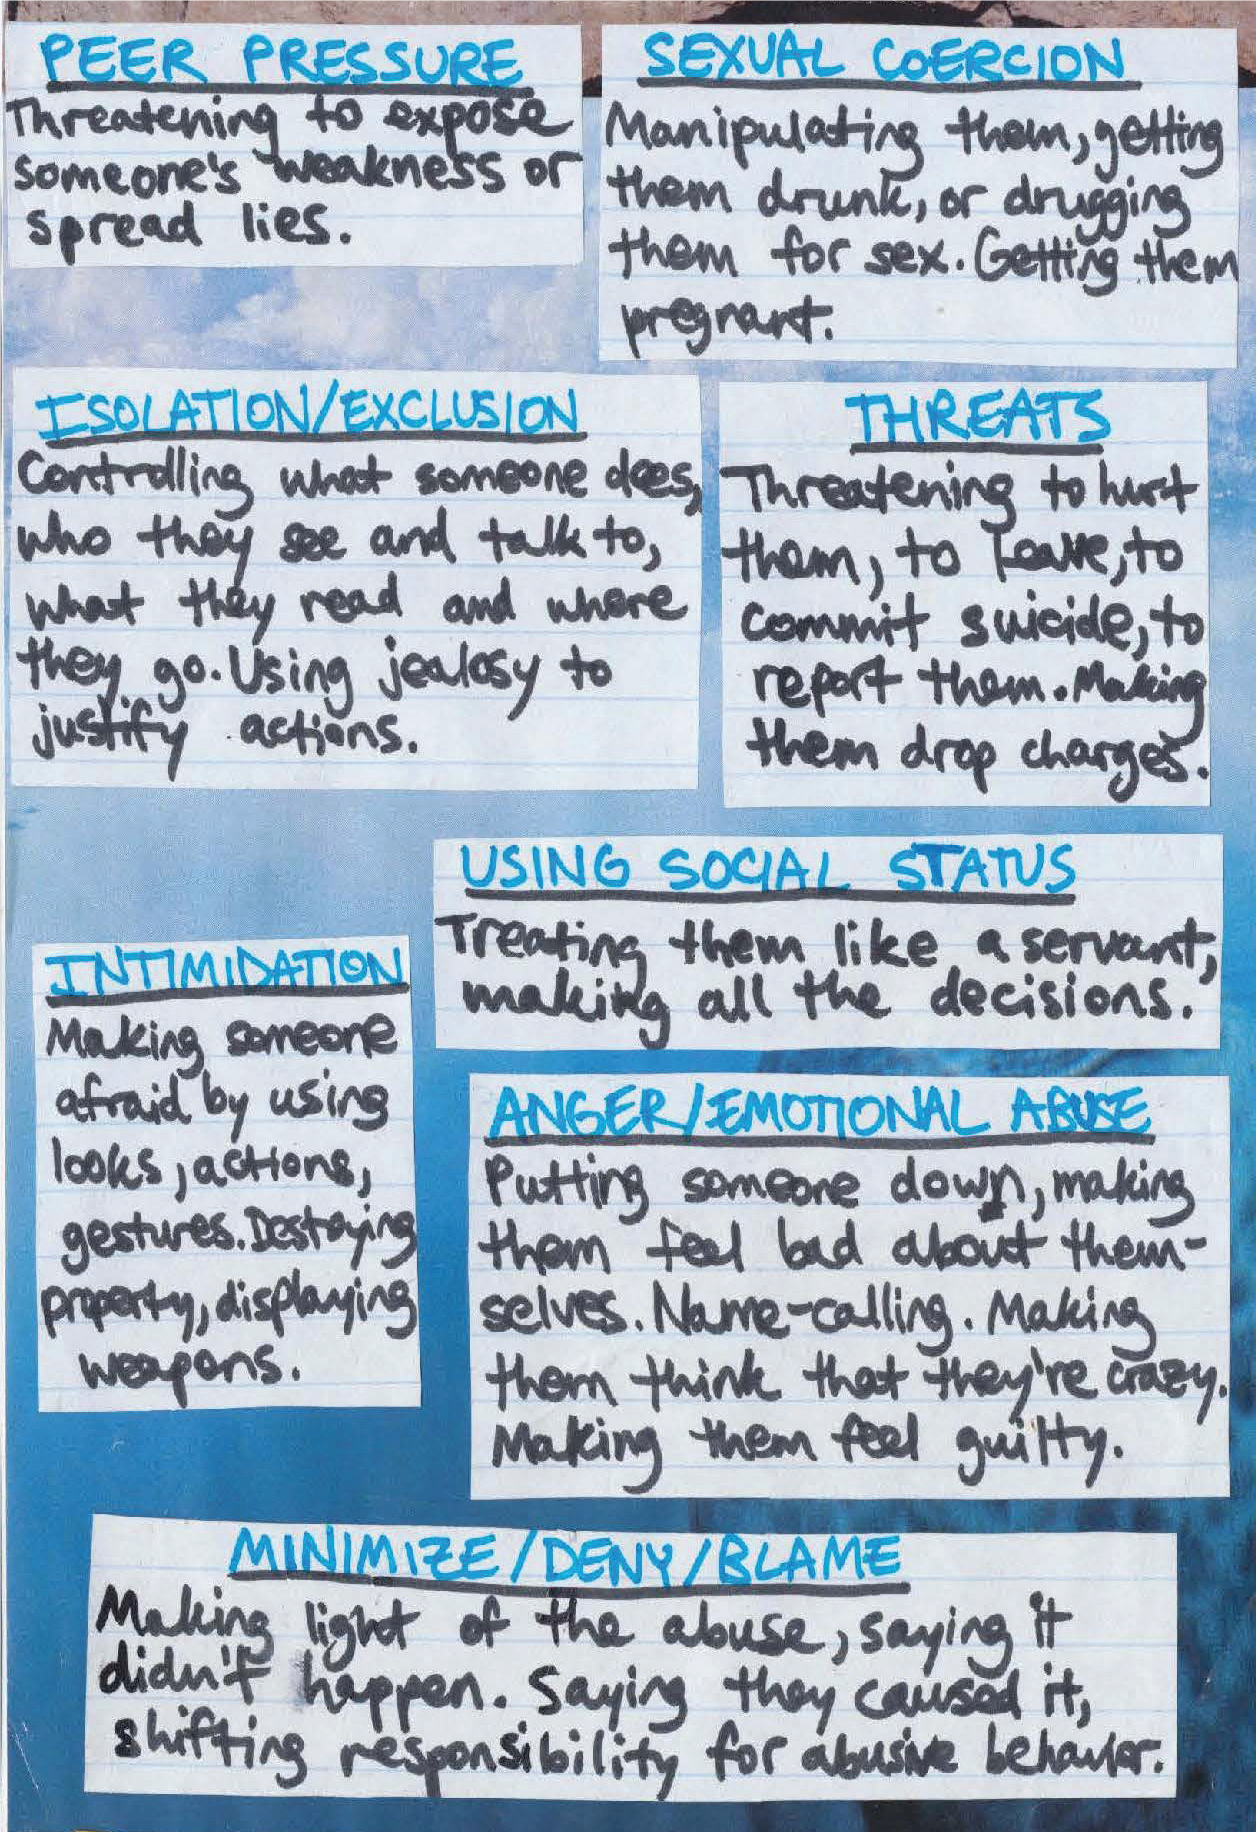 A page from the Crushin' It curriculum used in schools. Handwritten descriptions of abusive tactics in dating relationships.